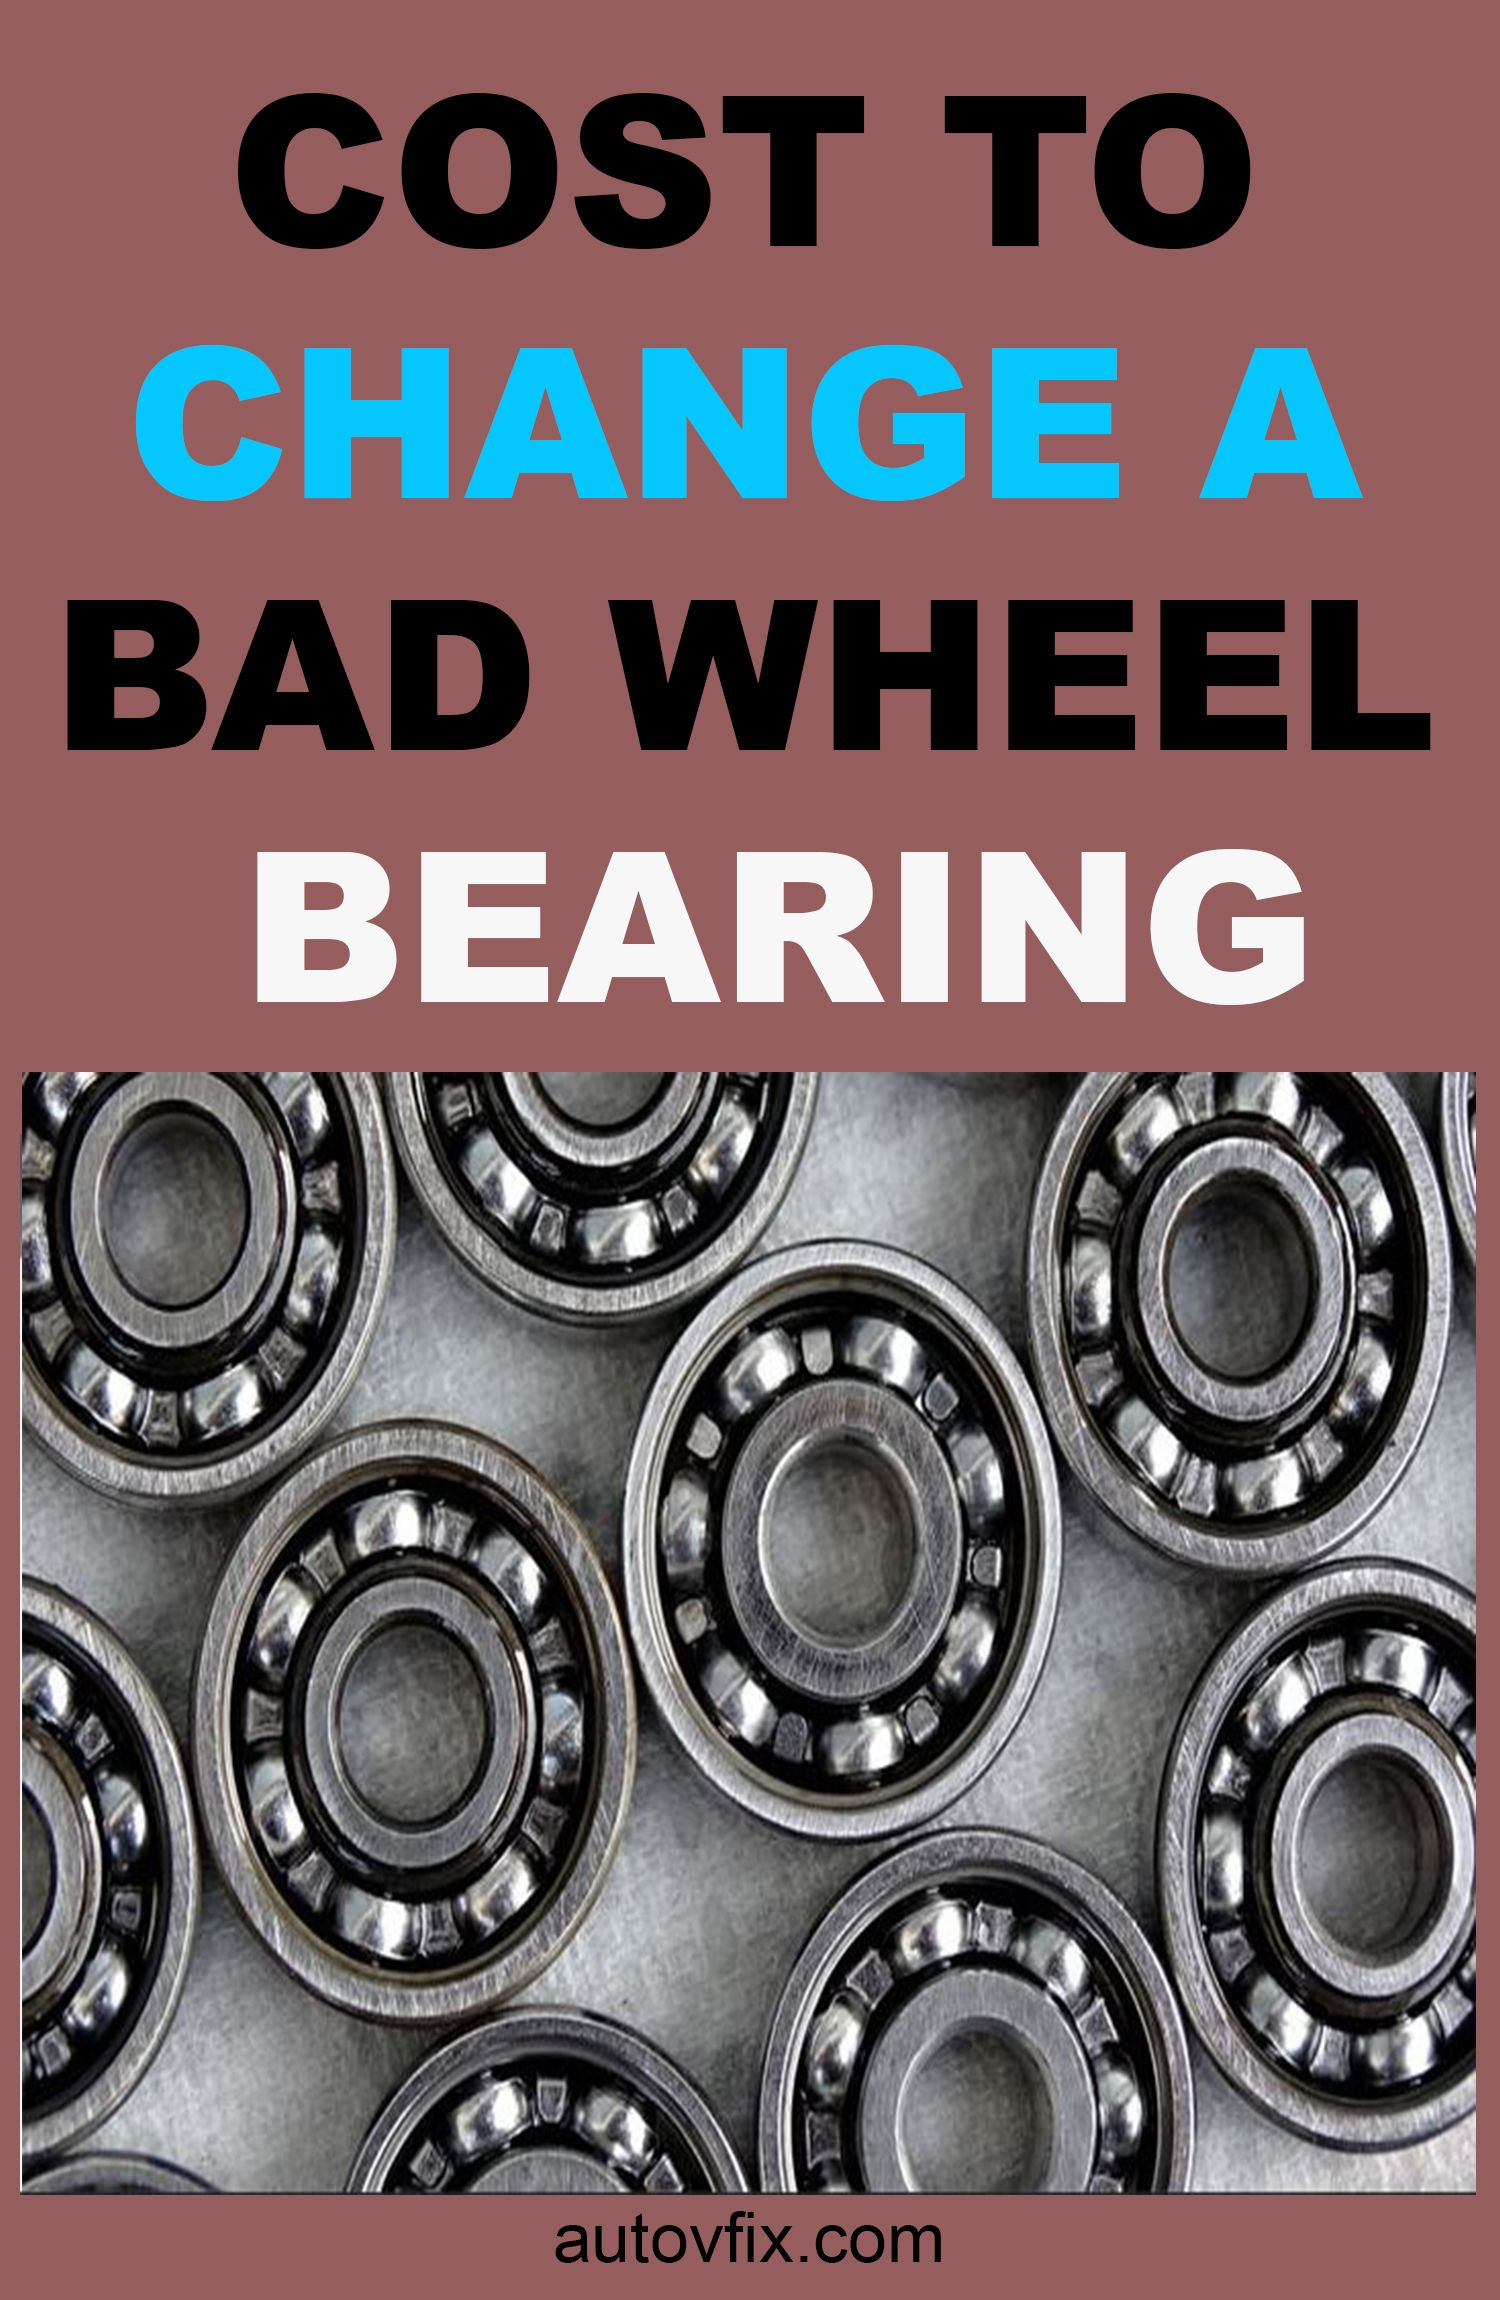 Wheels Bearing Replacement Cost Ultimate Guide For Different Cars Car Wheels Wheel Car Tires